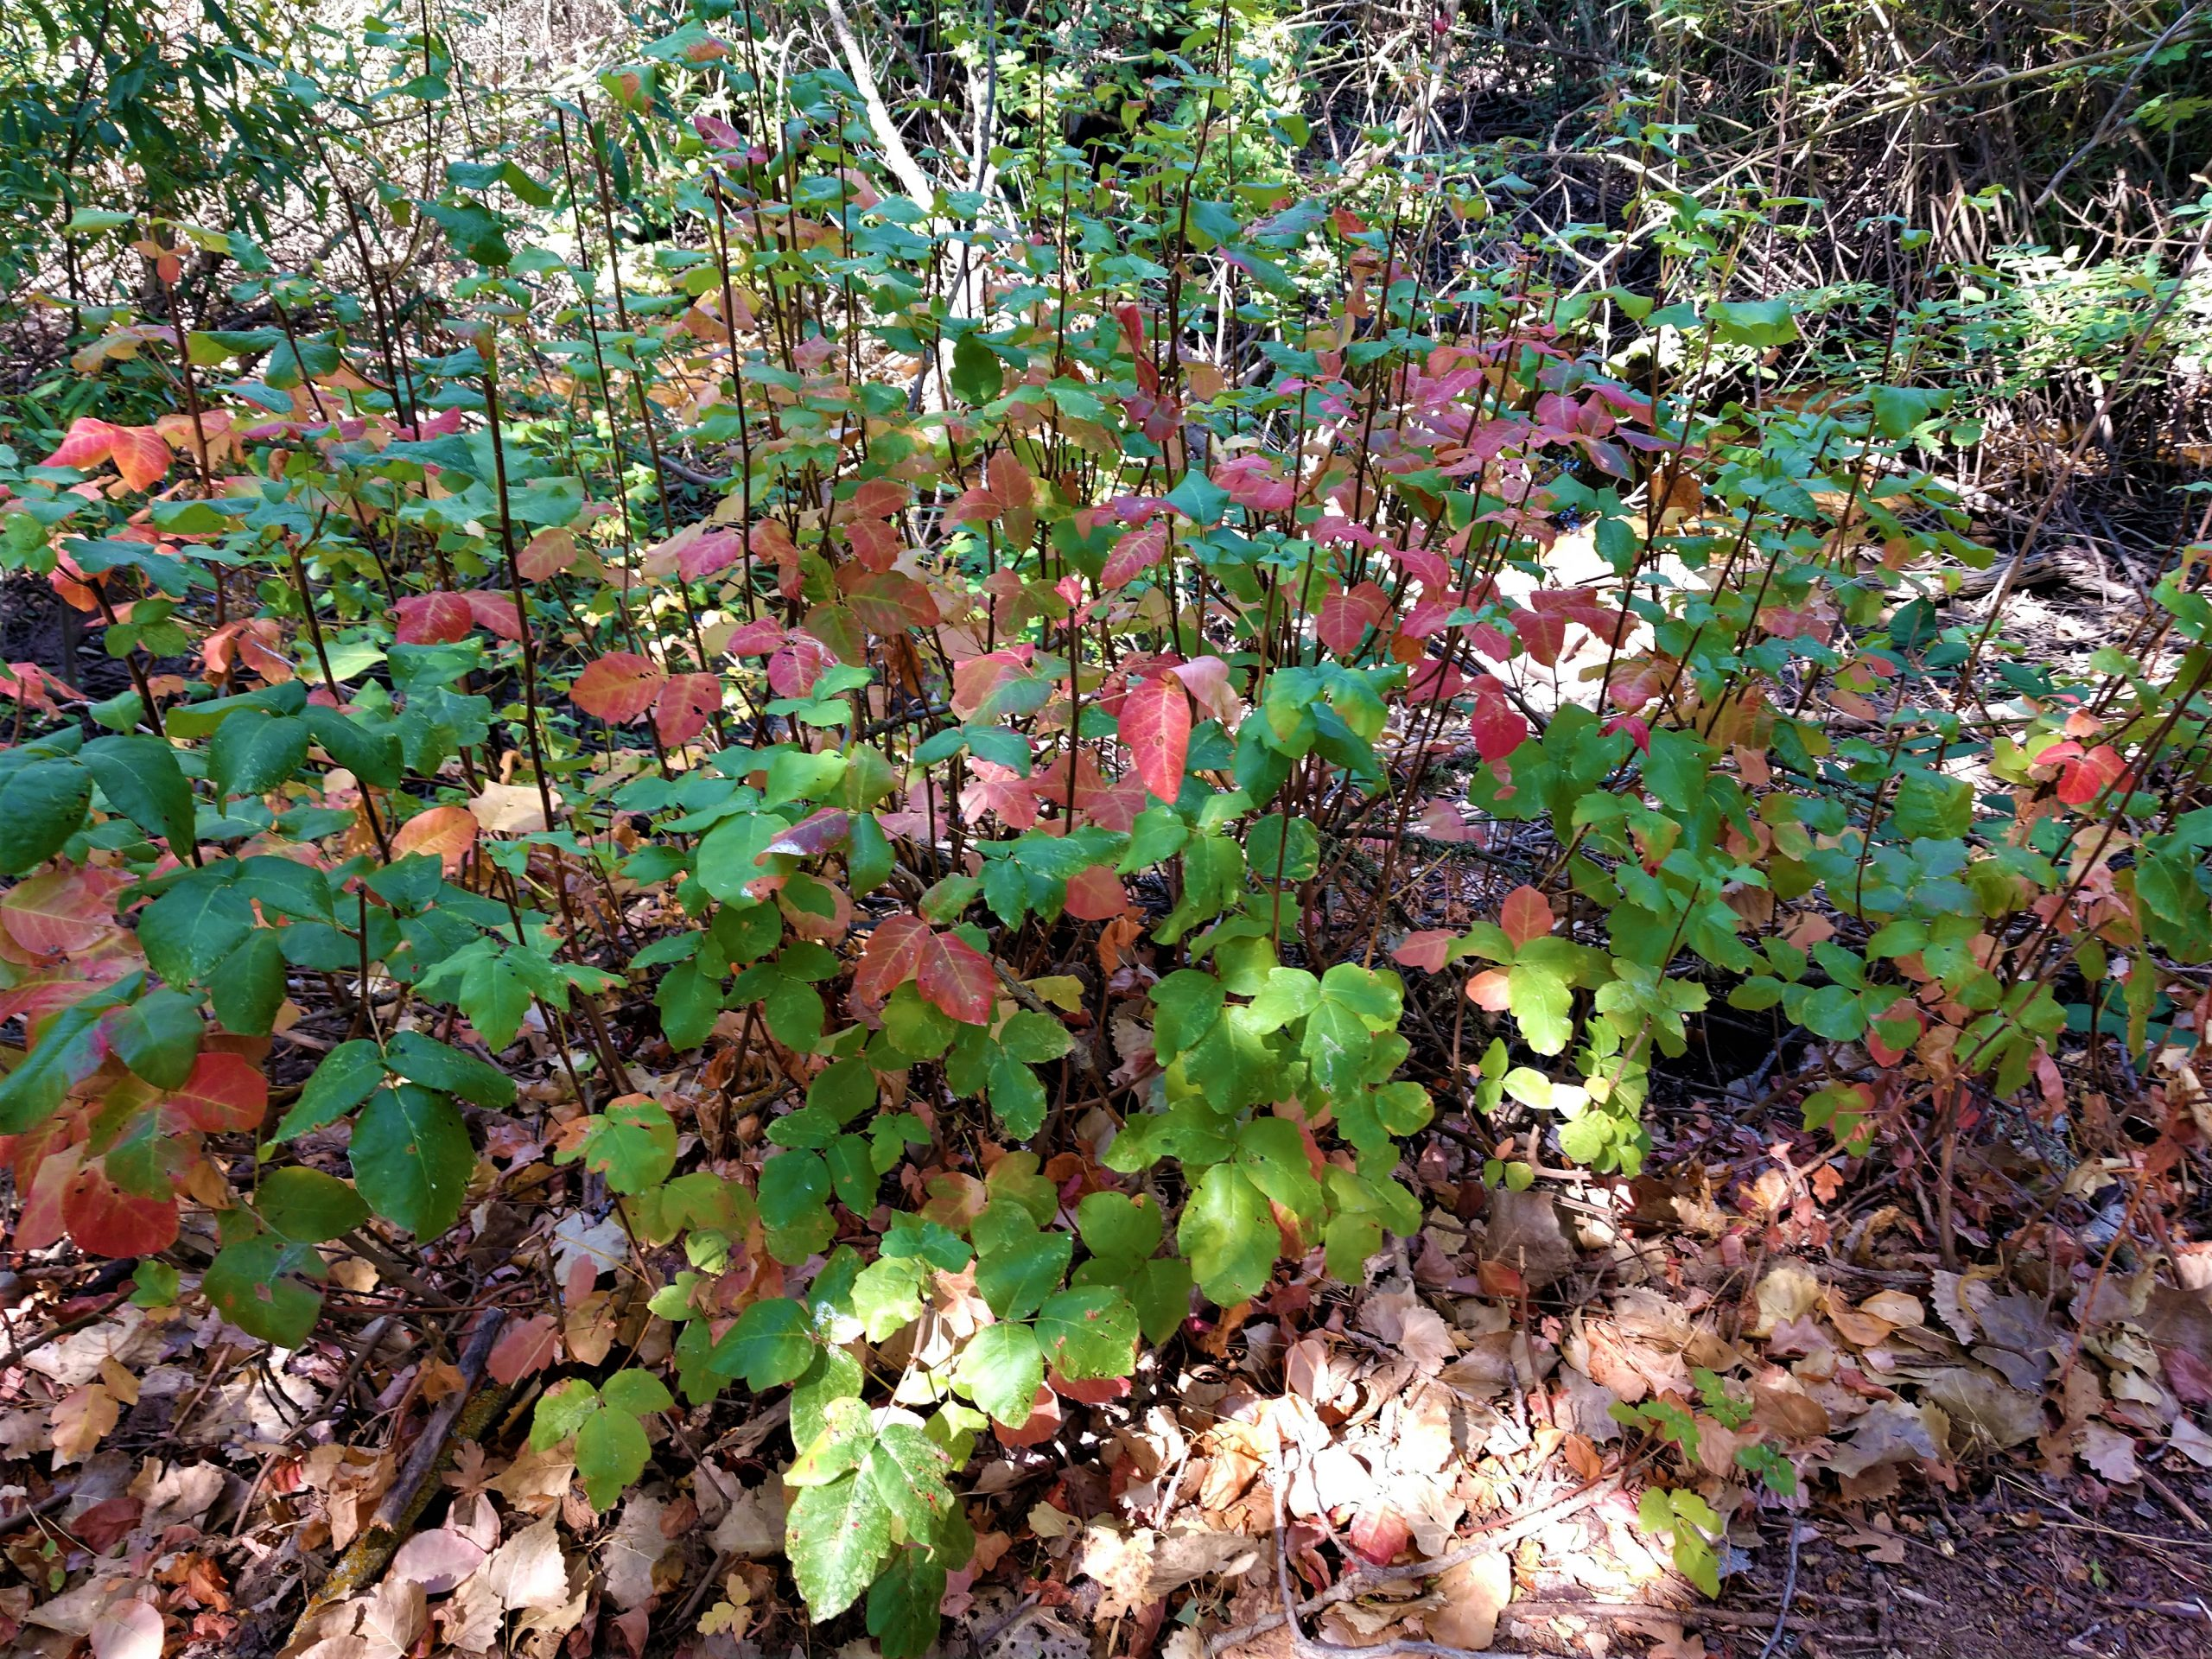 Poison Oak: the good that's hard to see